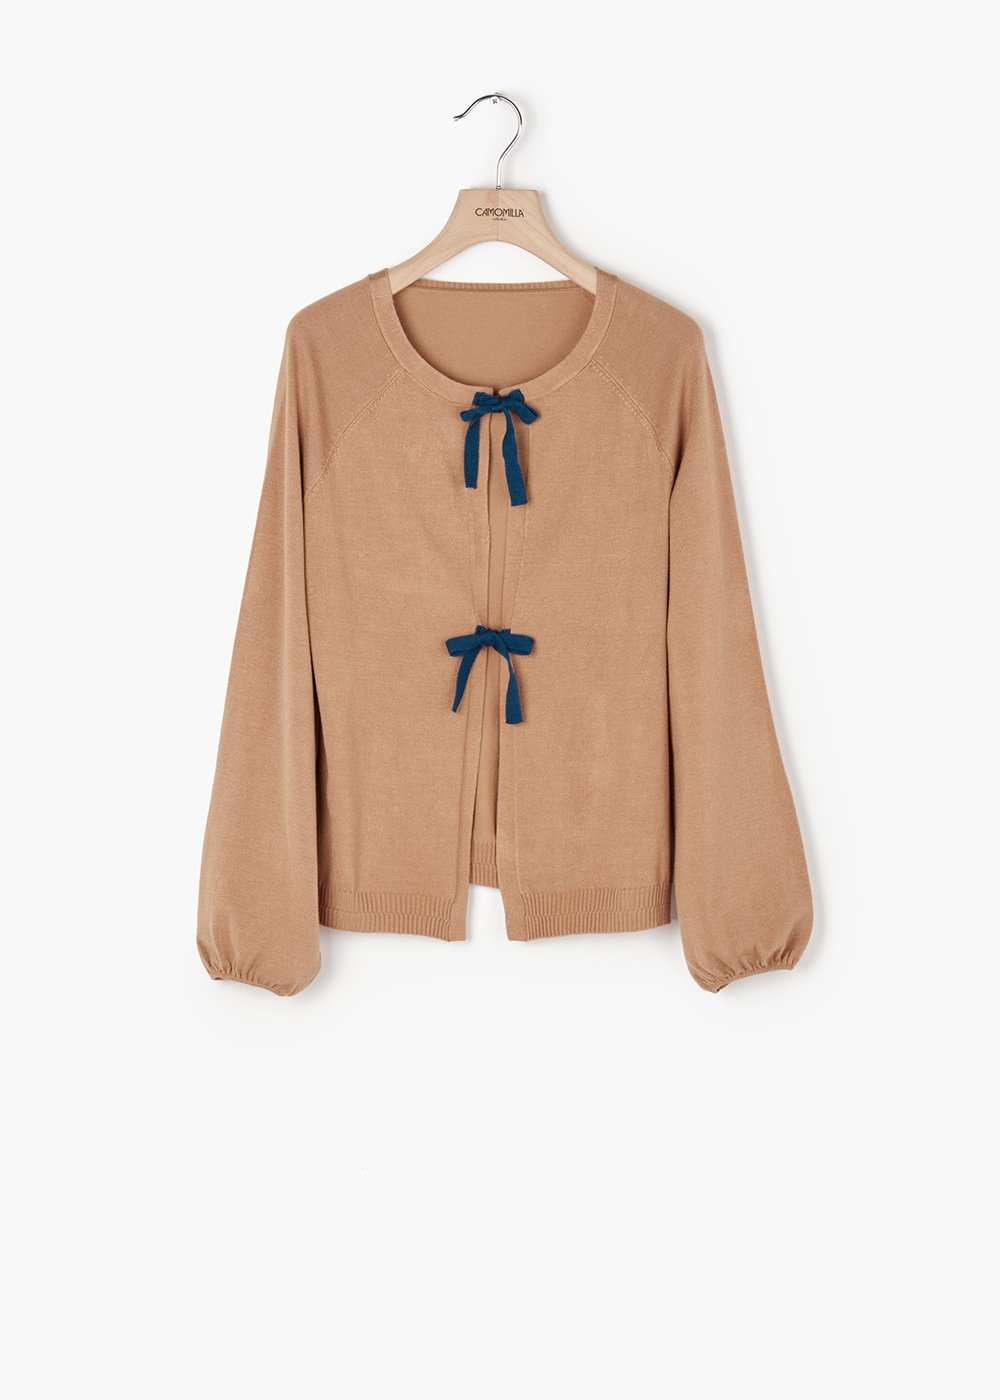 Clair jersey cardigan with puff sleeves